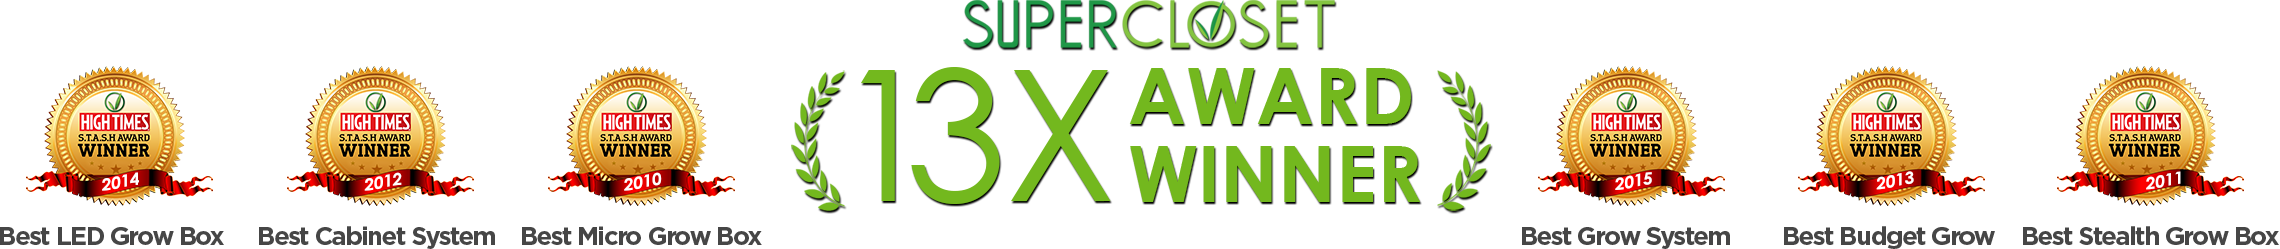 Supercloset awards